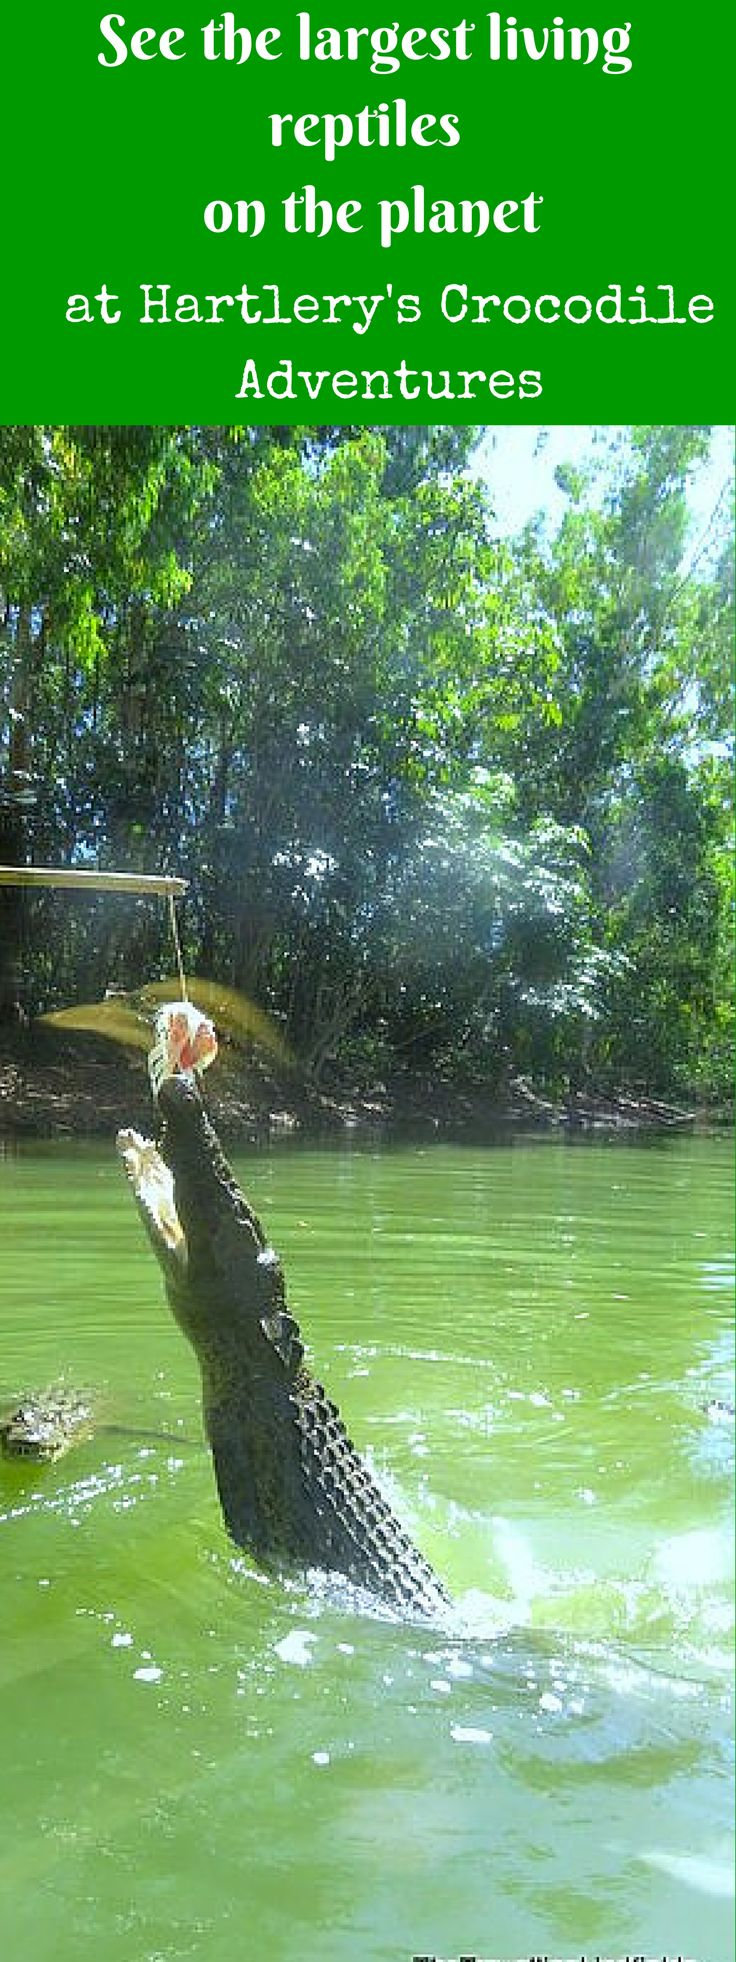 Hartley's Crocodile Adventures - between Cairns and Port Douglas in Far North Queensland http://www.thetravellinglindfields.com/2015/09/hartleys-crocodile-adventures.html